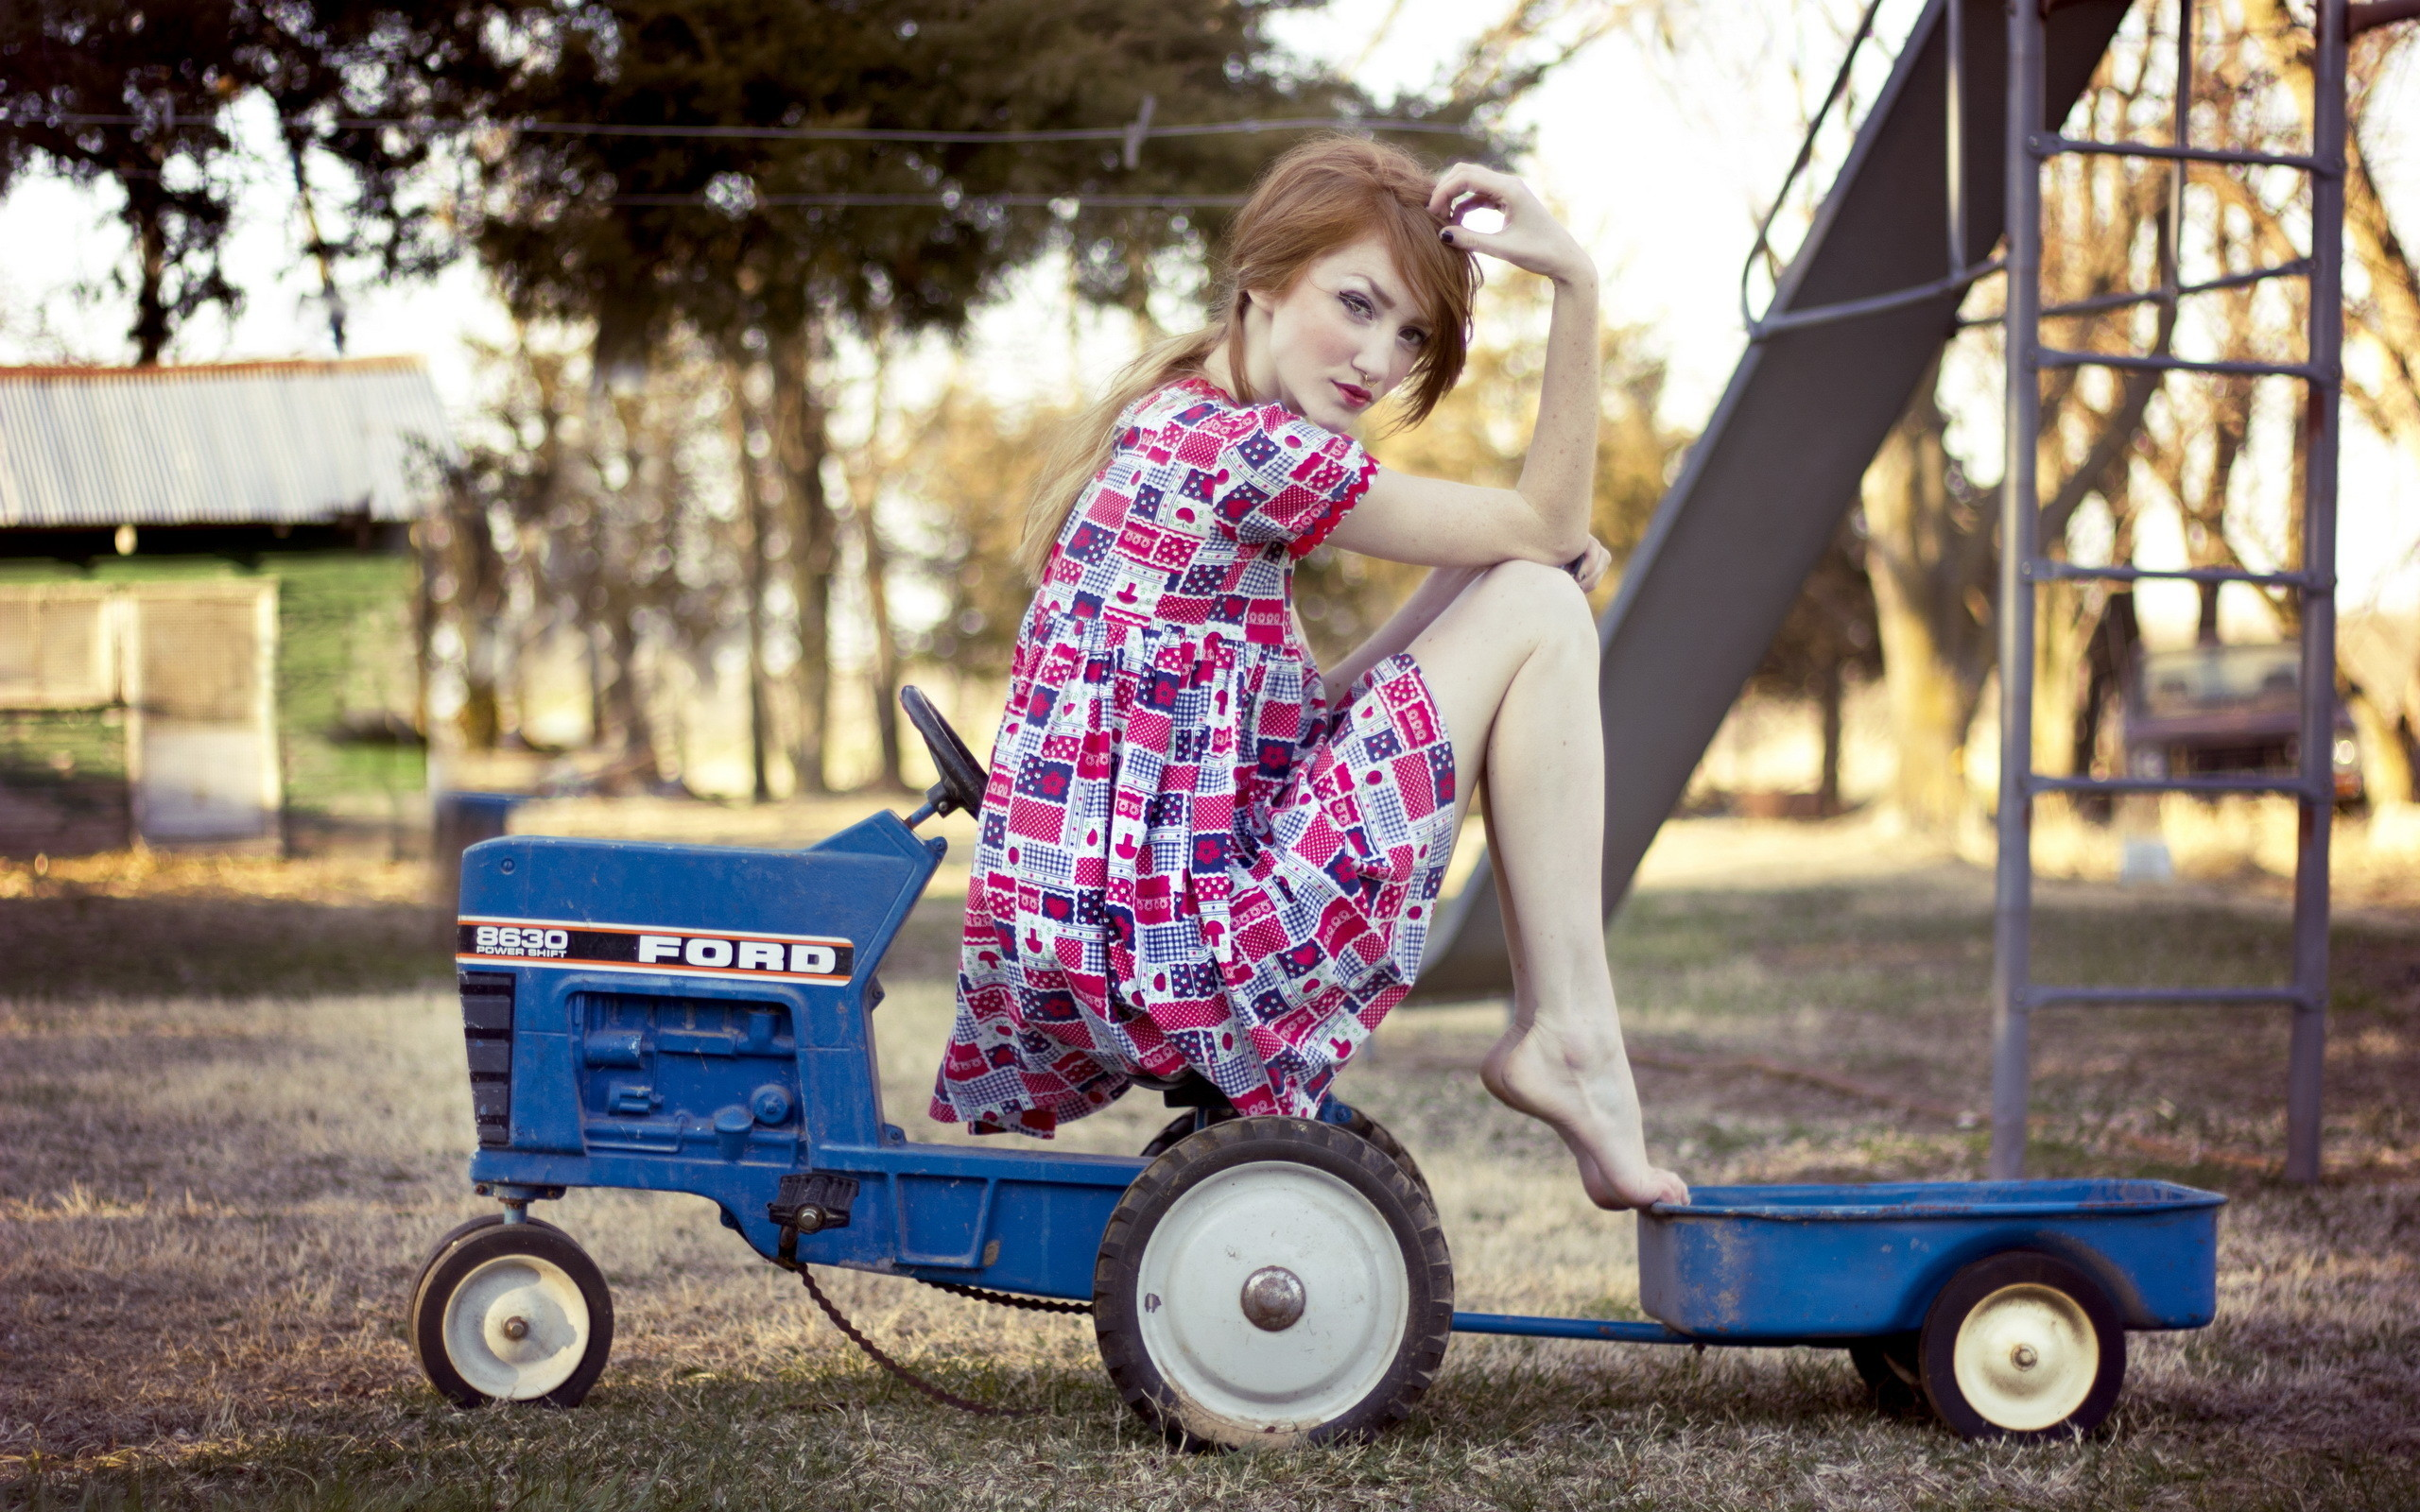 wallpaper.wiki-Giant-tractor-ford-farm-country-photoshoot-